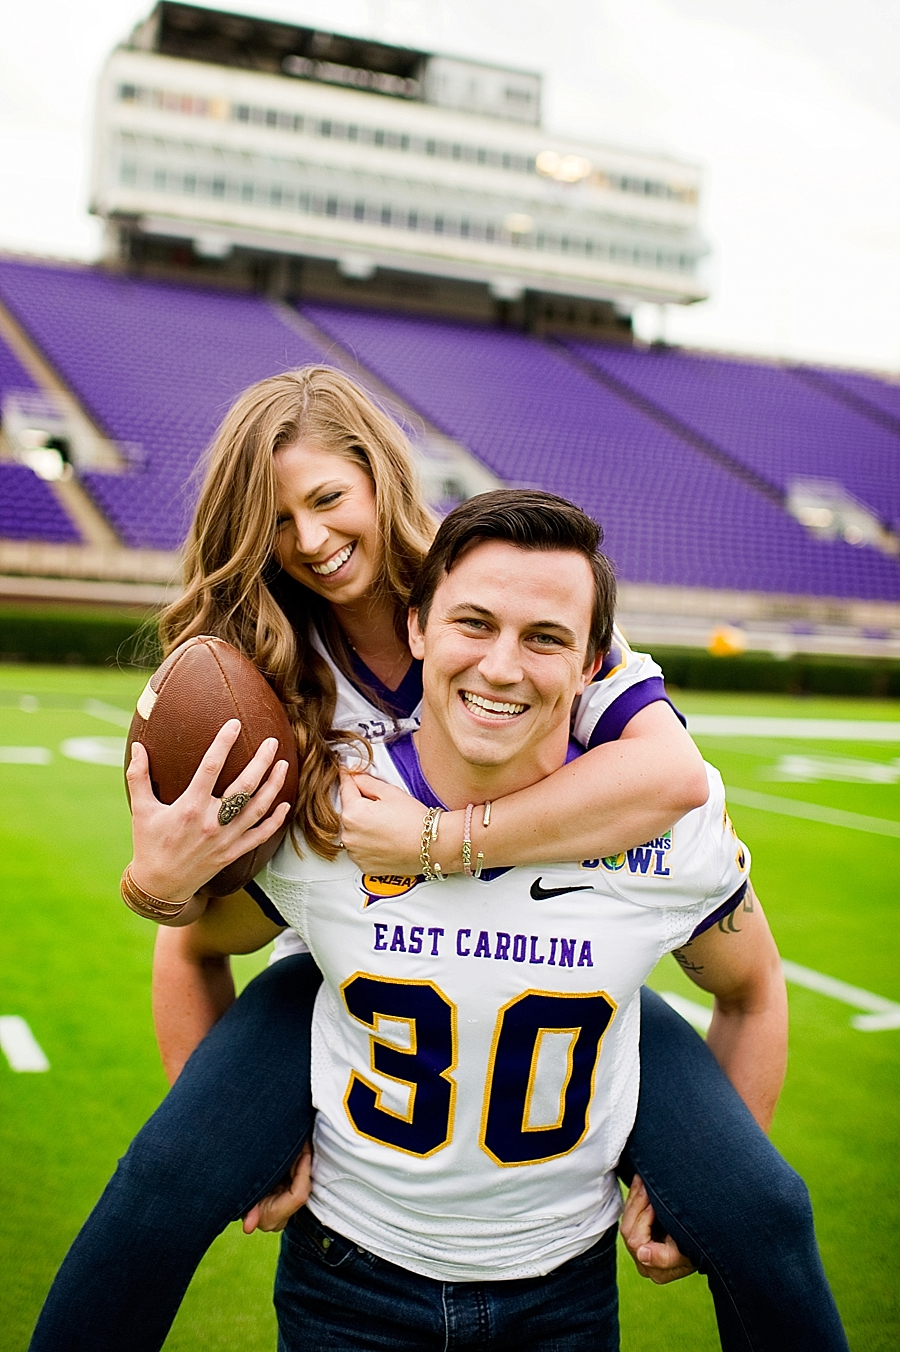 Kelly & Cody are ECU Pirates, and Cody is a former ECU football player - this was perfect!